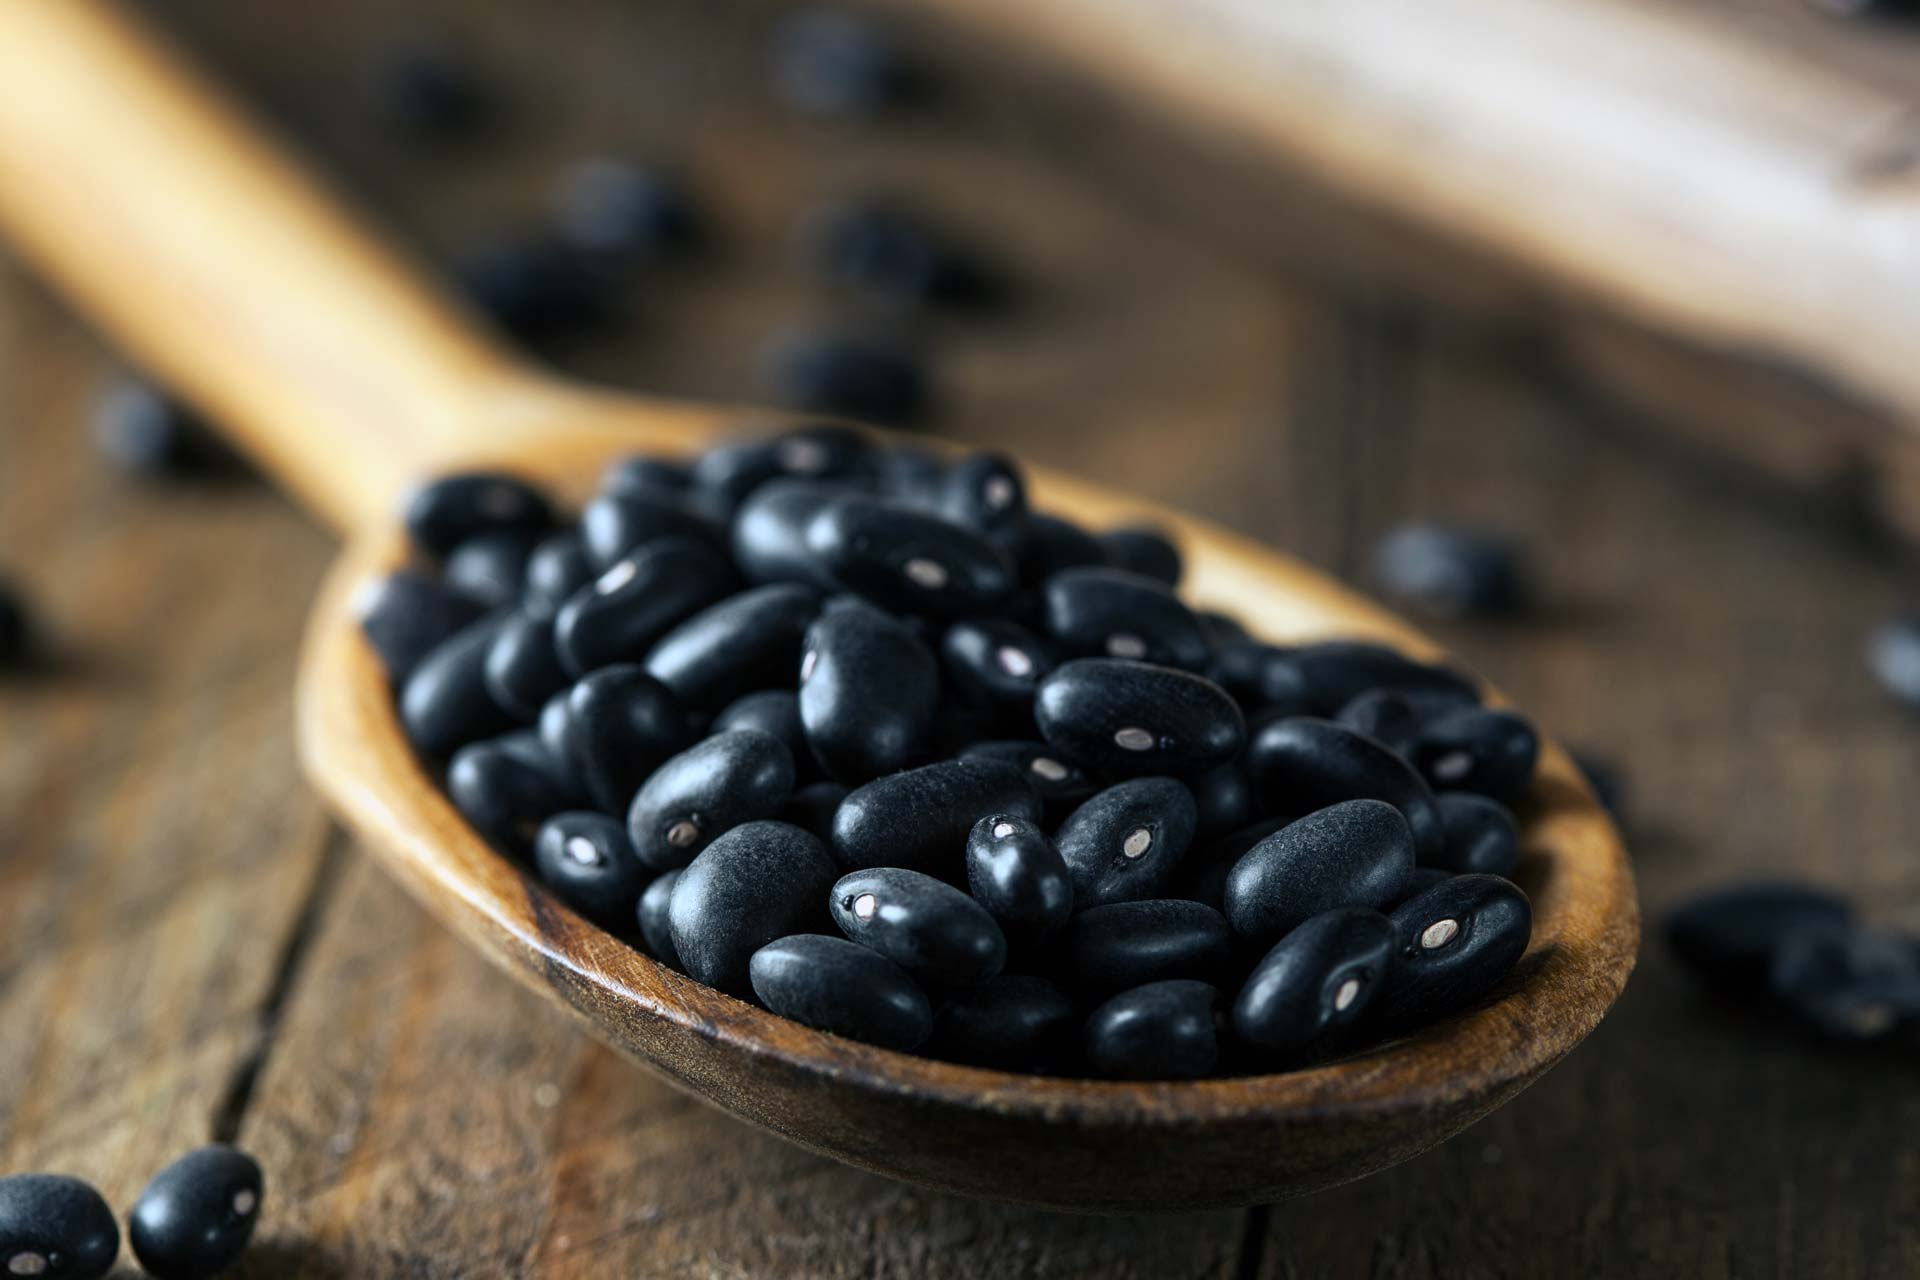 black beans in a wooden spoon